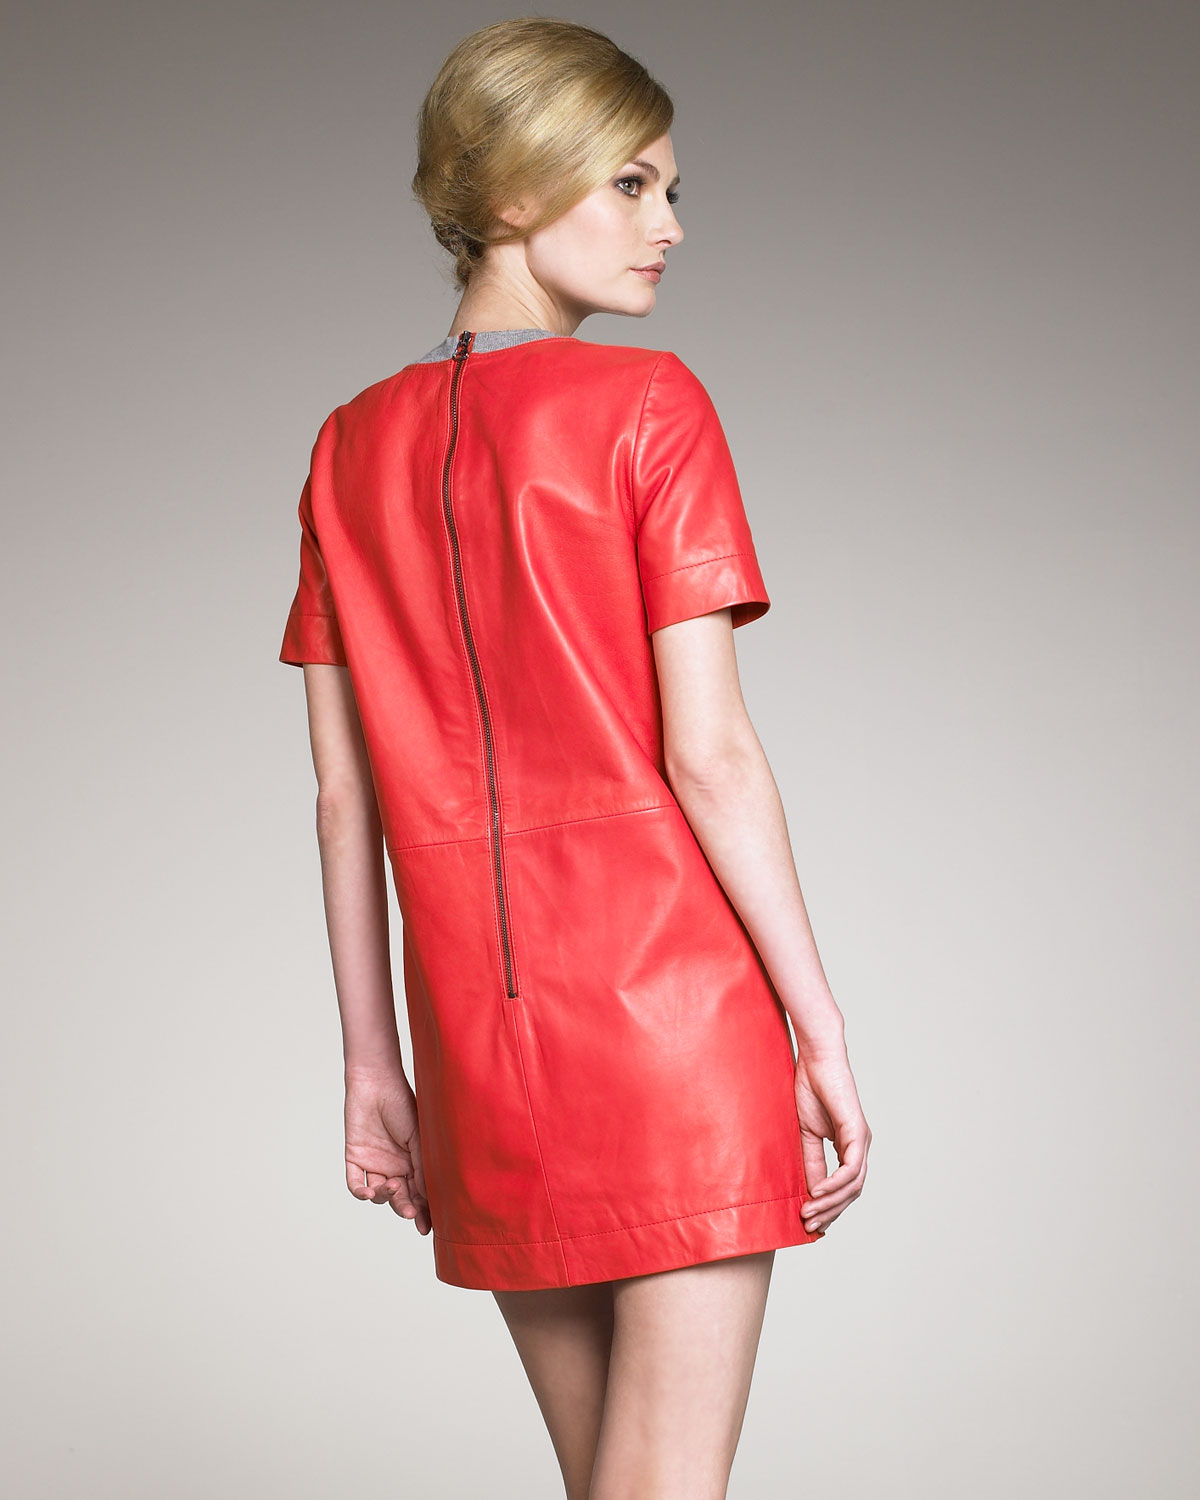 d4e029f0059 Cacharel Knit-trimmed Leather Shift Dress in Red - Lyst